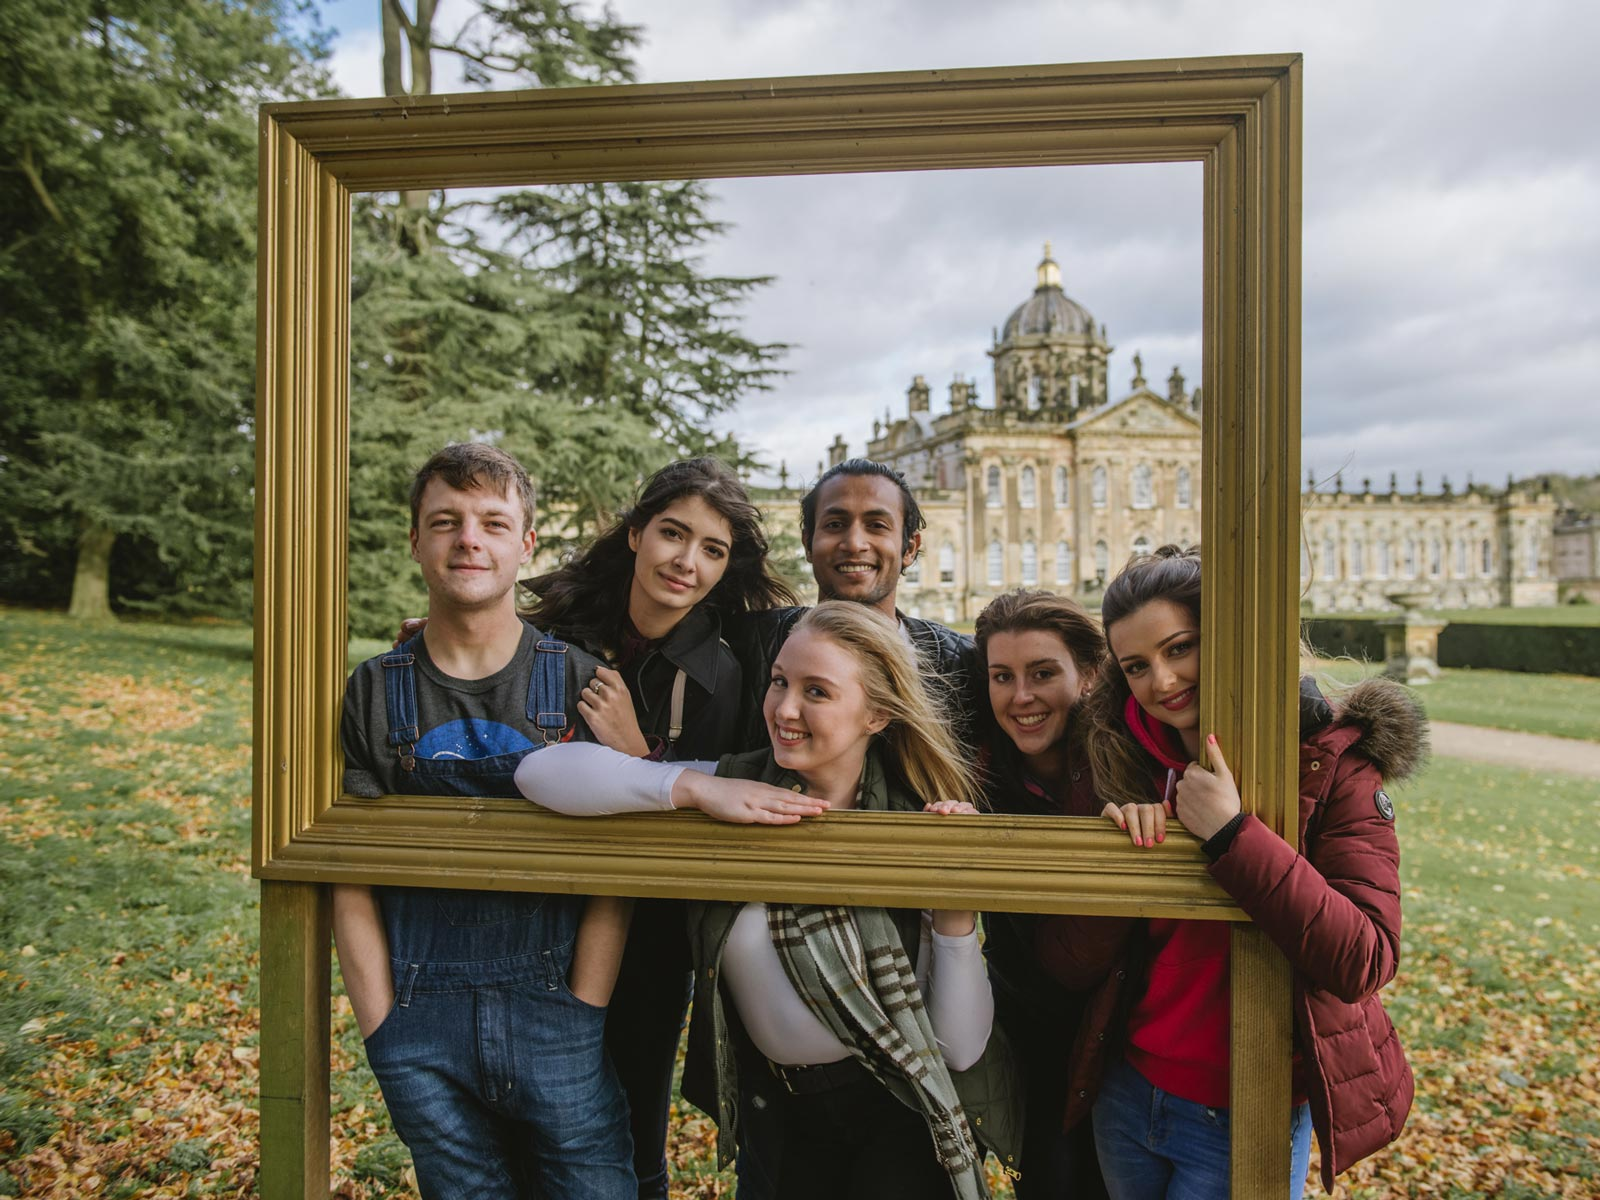 A group of 6 students in front of Castle Howard